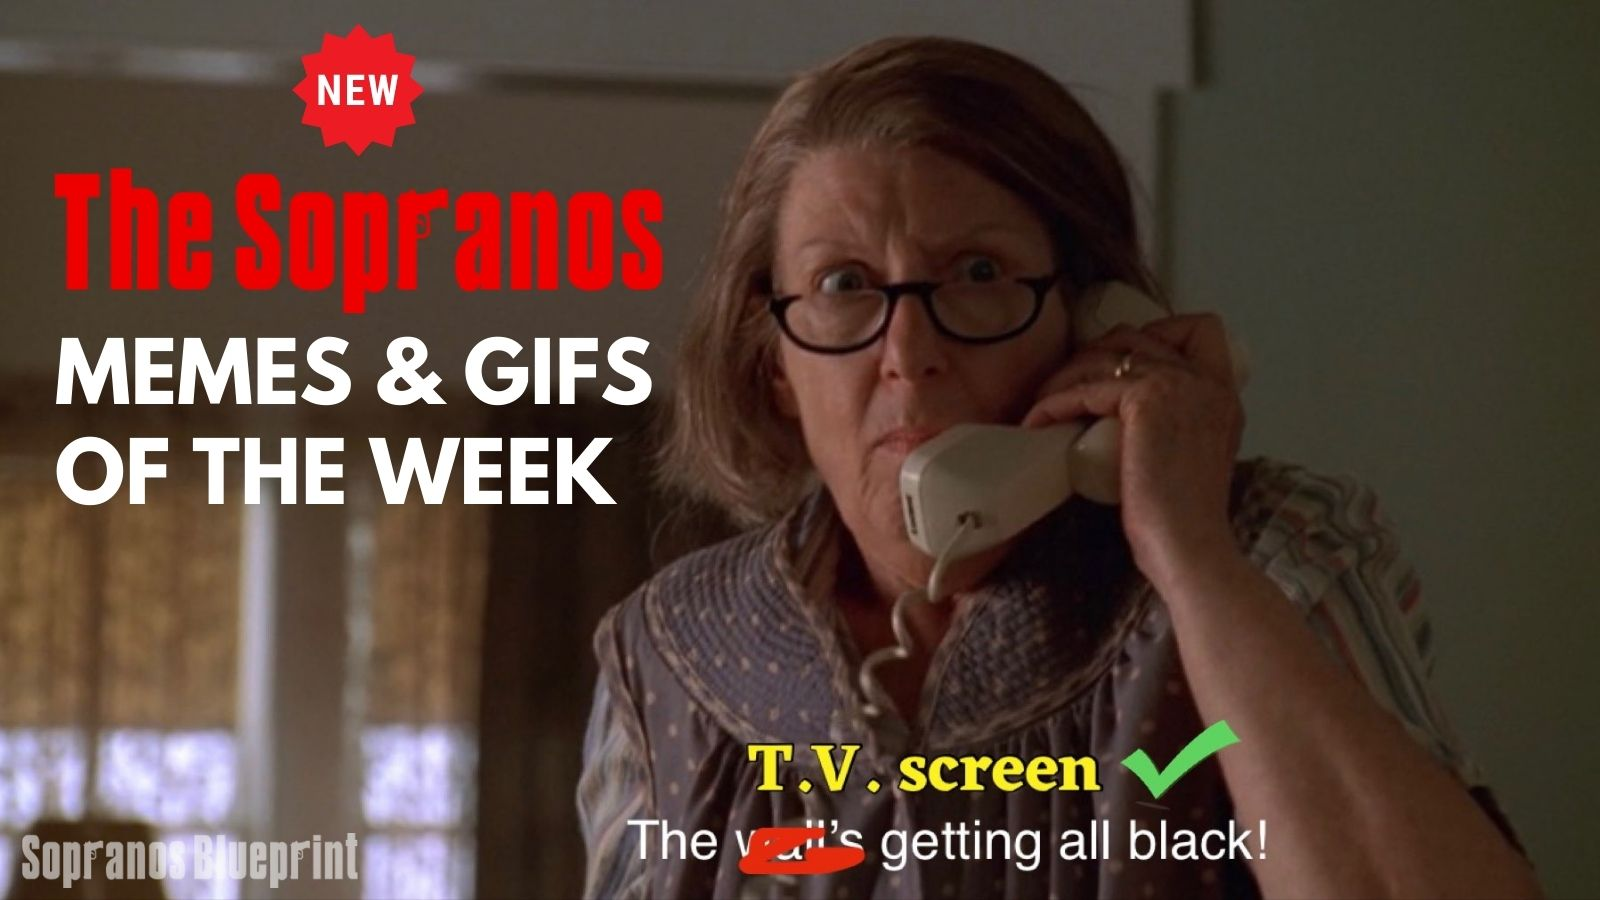 sopranos memes and gifs of the week blog image